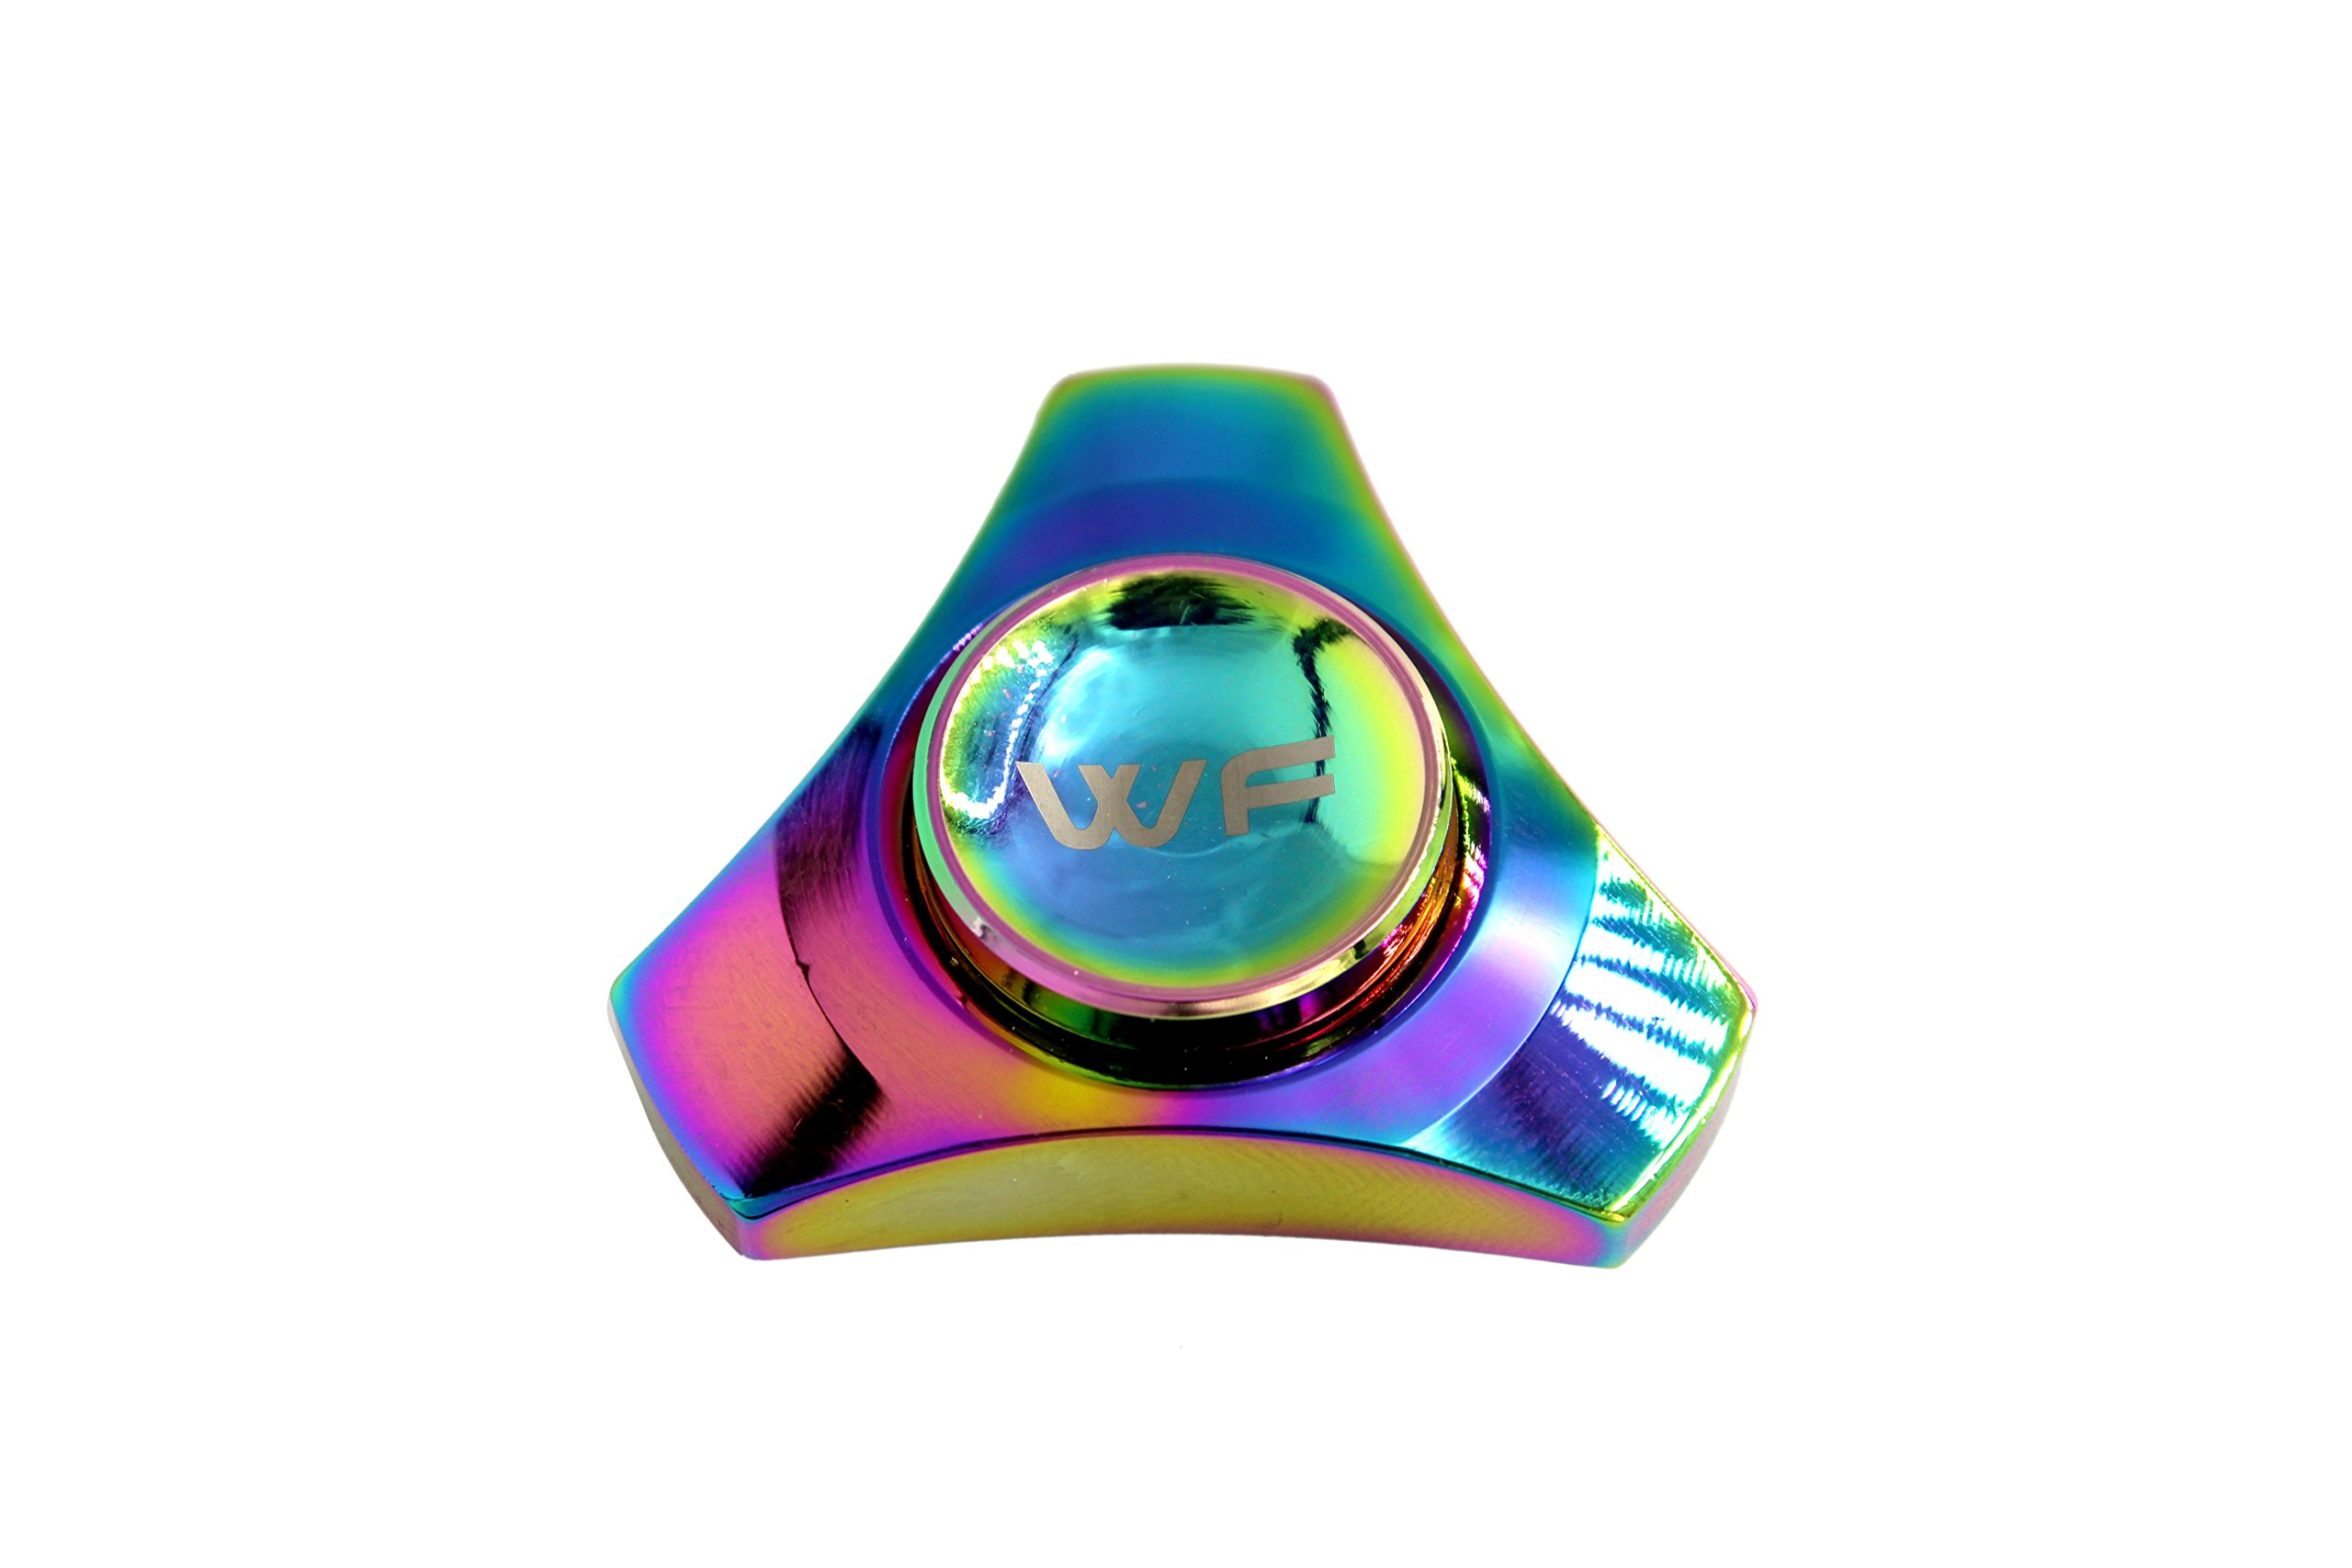 WeFidget ELECTROPLATED Mini Hand Spinner Designs, Insane Spin Times, Super Discrete, Premium Finishes, Replaceable Bearings, Trinity Design, Tin Travel Case Included